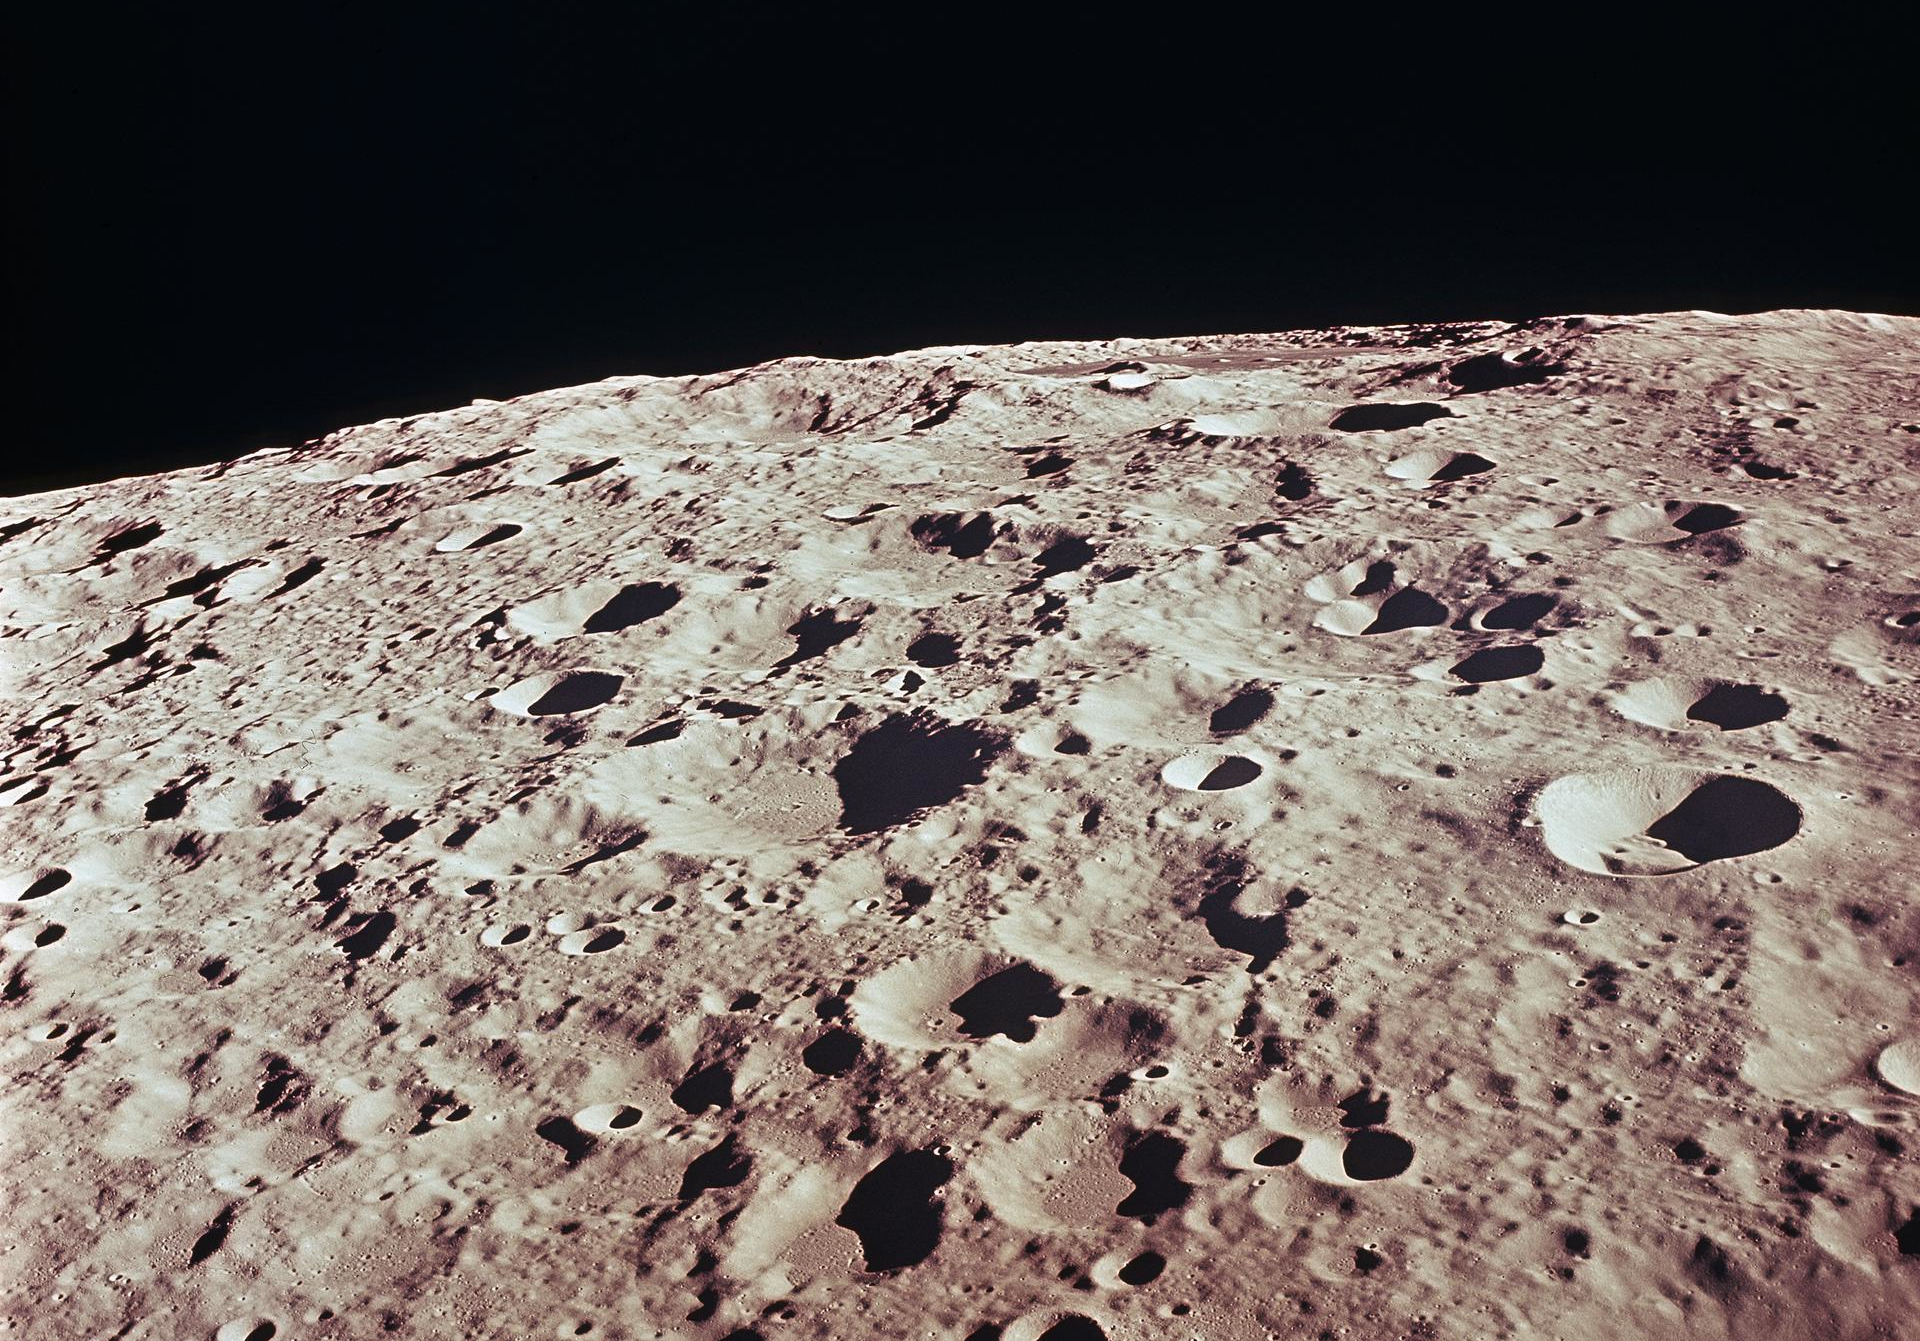 close up of craters on the moon